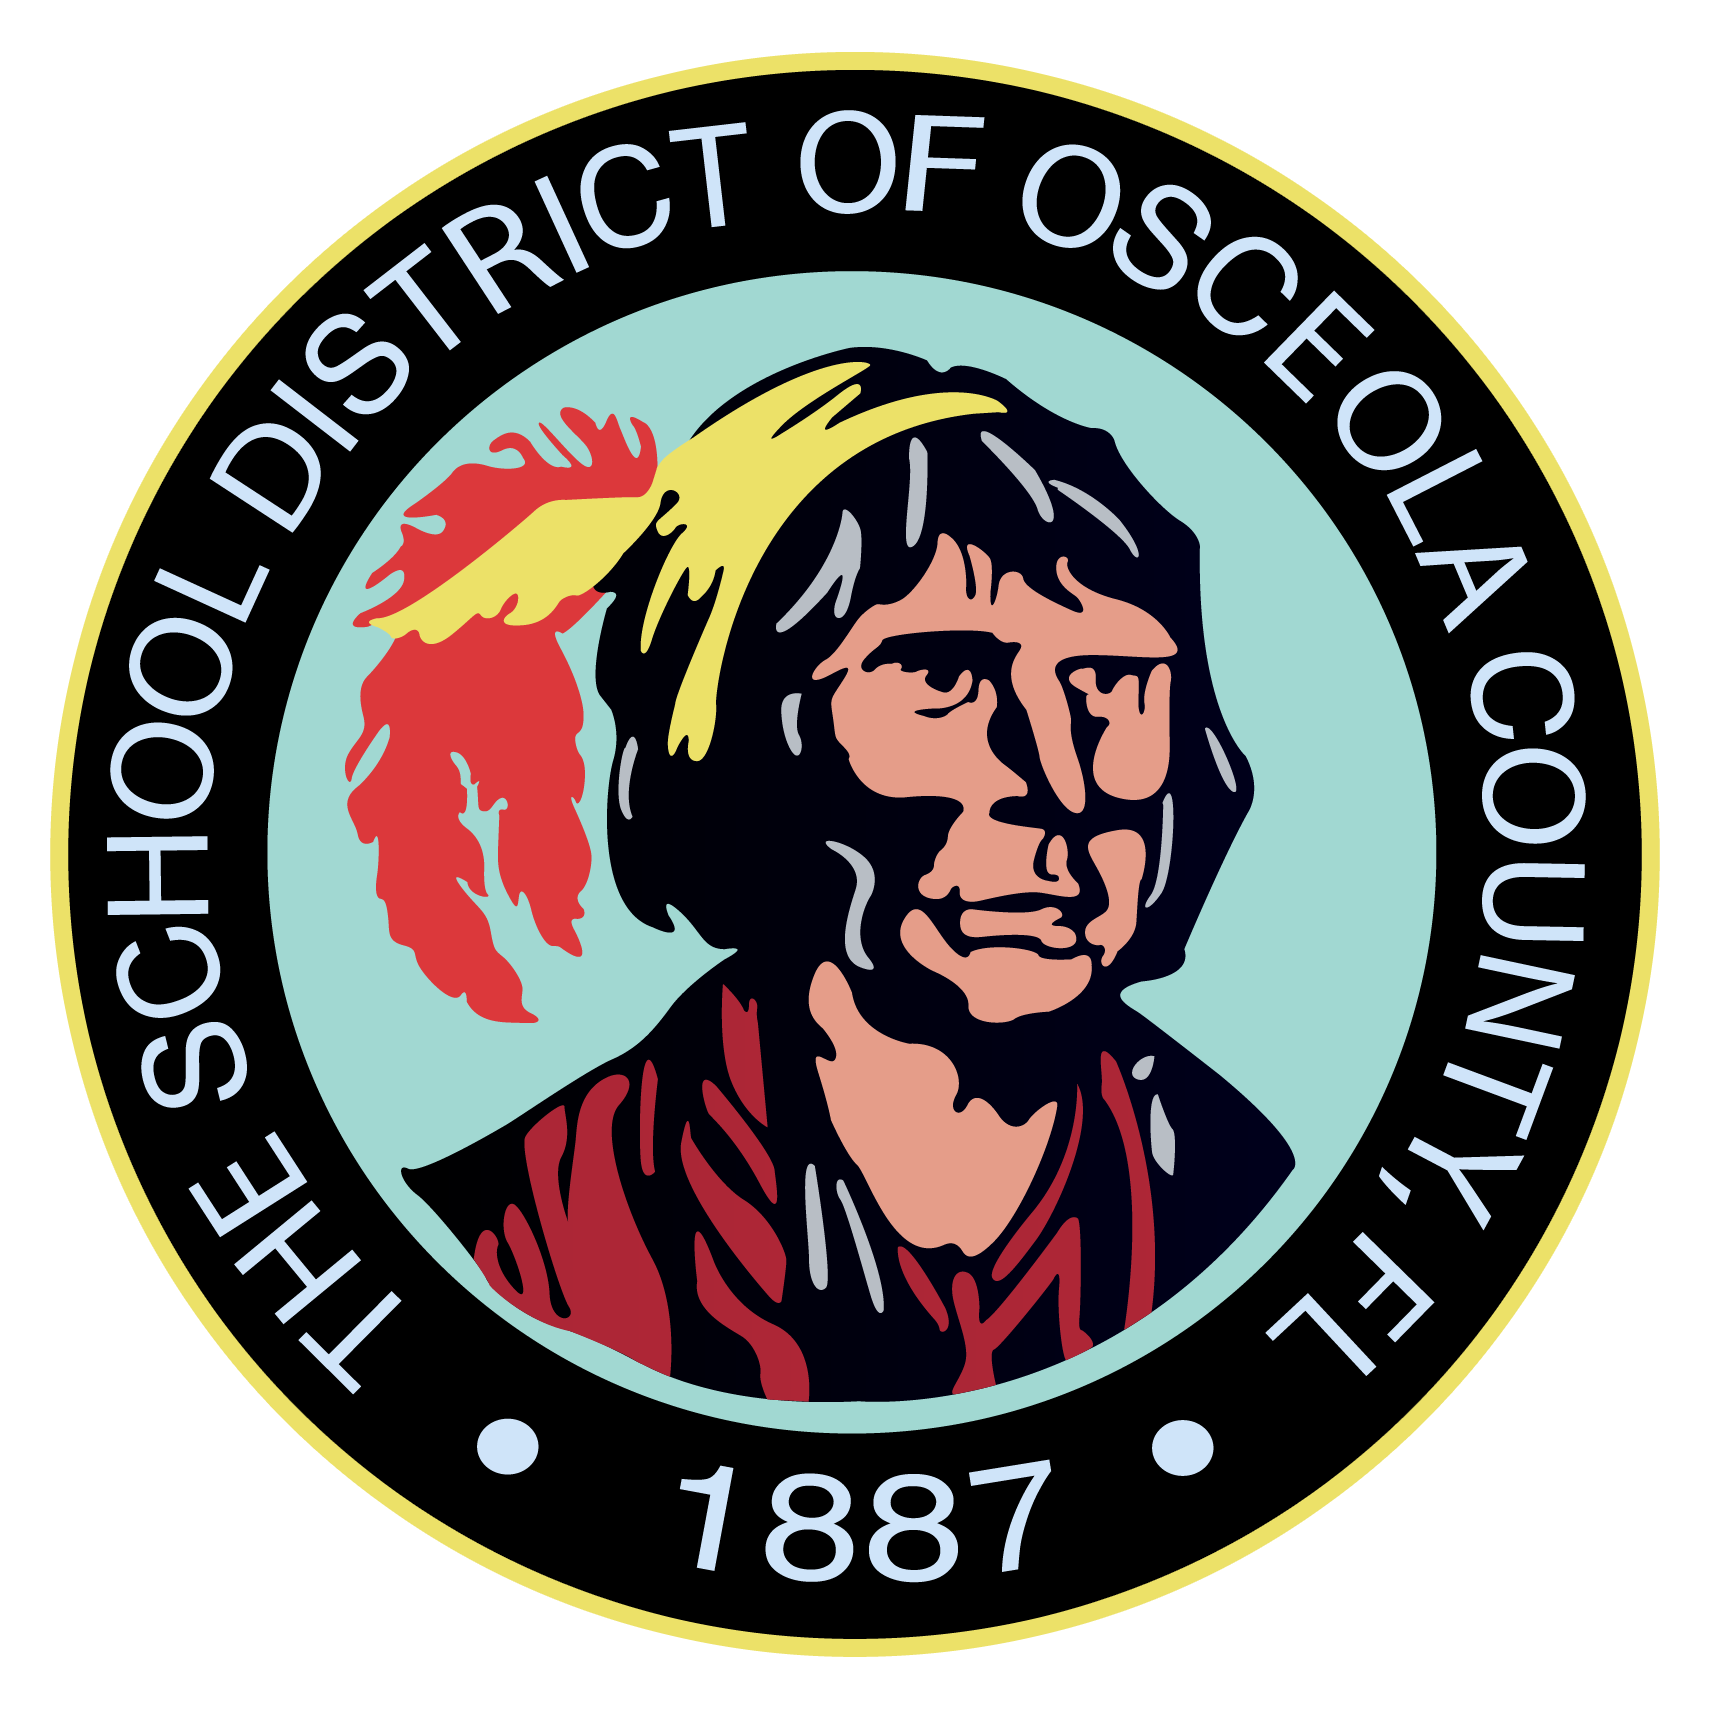 Link to School District of Osceola County